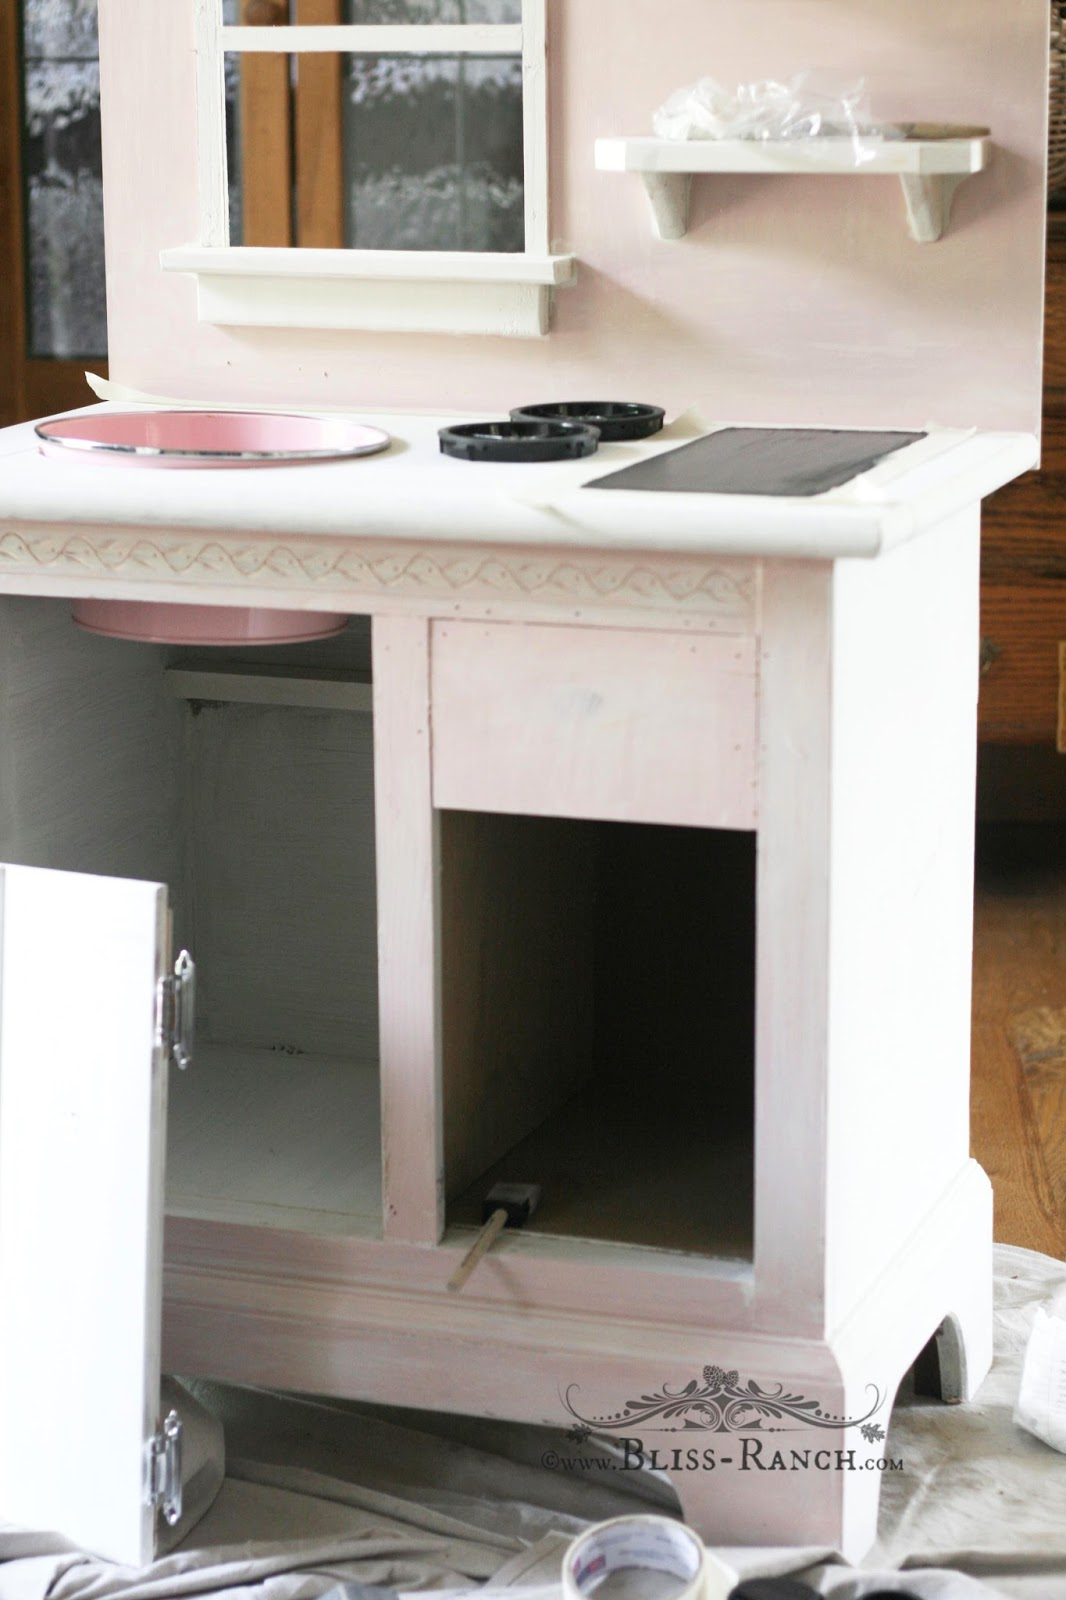 Upcycled Nightstand to Play Kitchen Bliss-Ranch.com #playkitchen #upcycledfurniture #kids